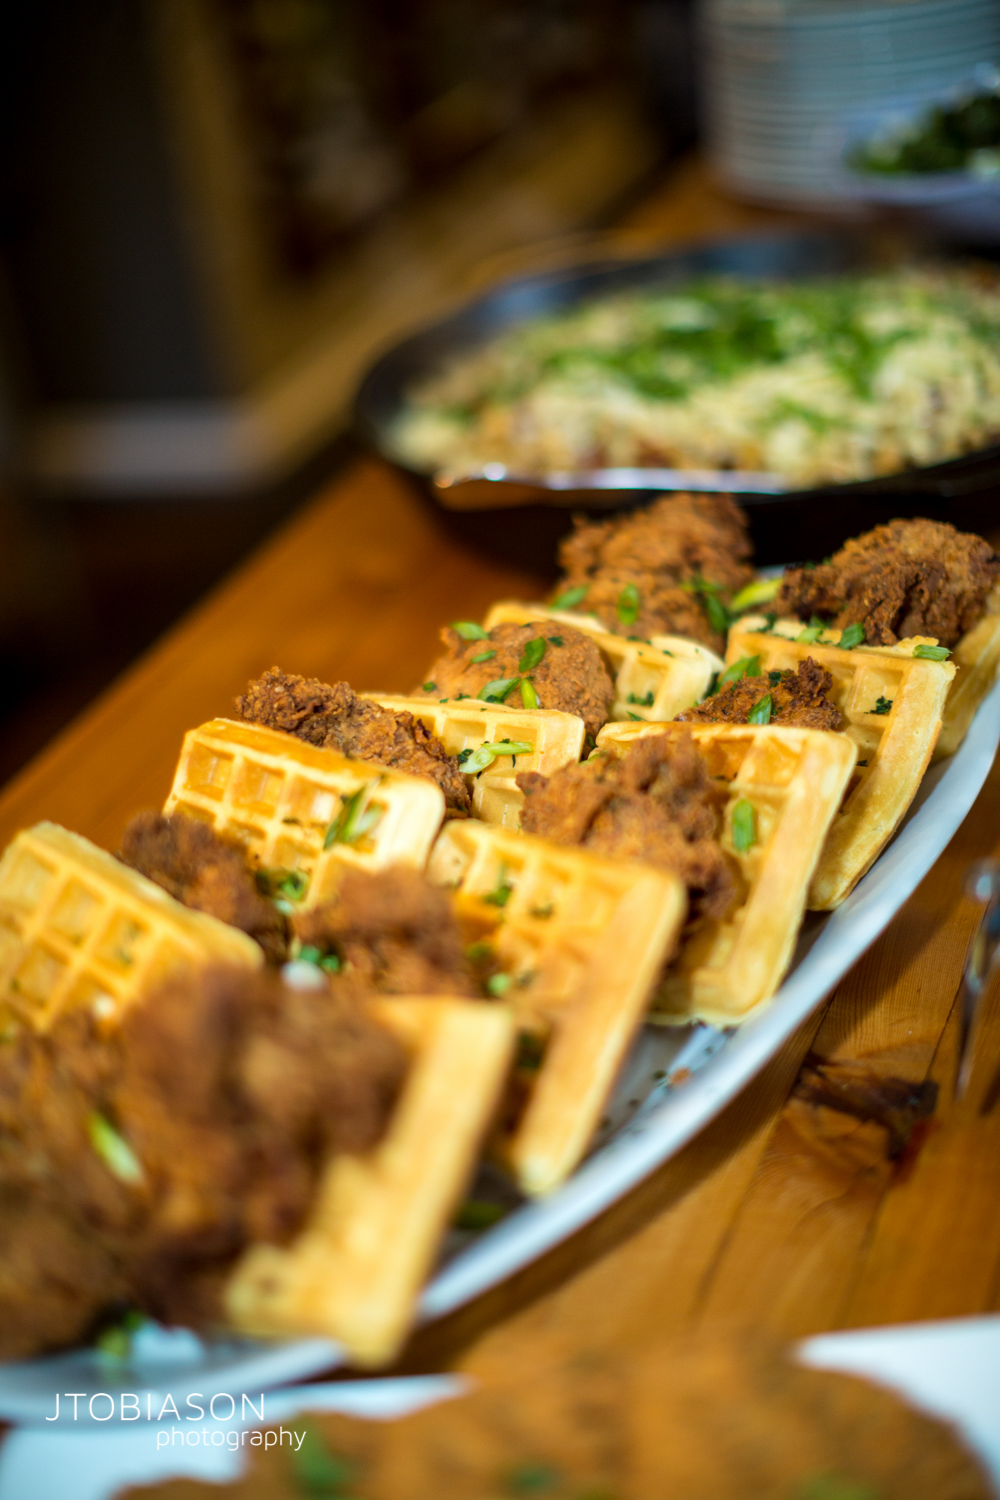 35 - chicken and waffles photo